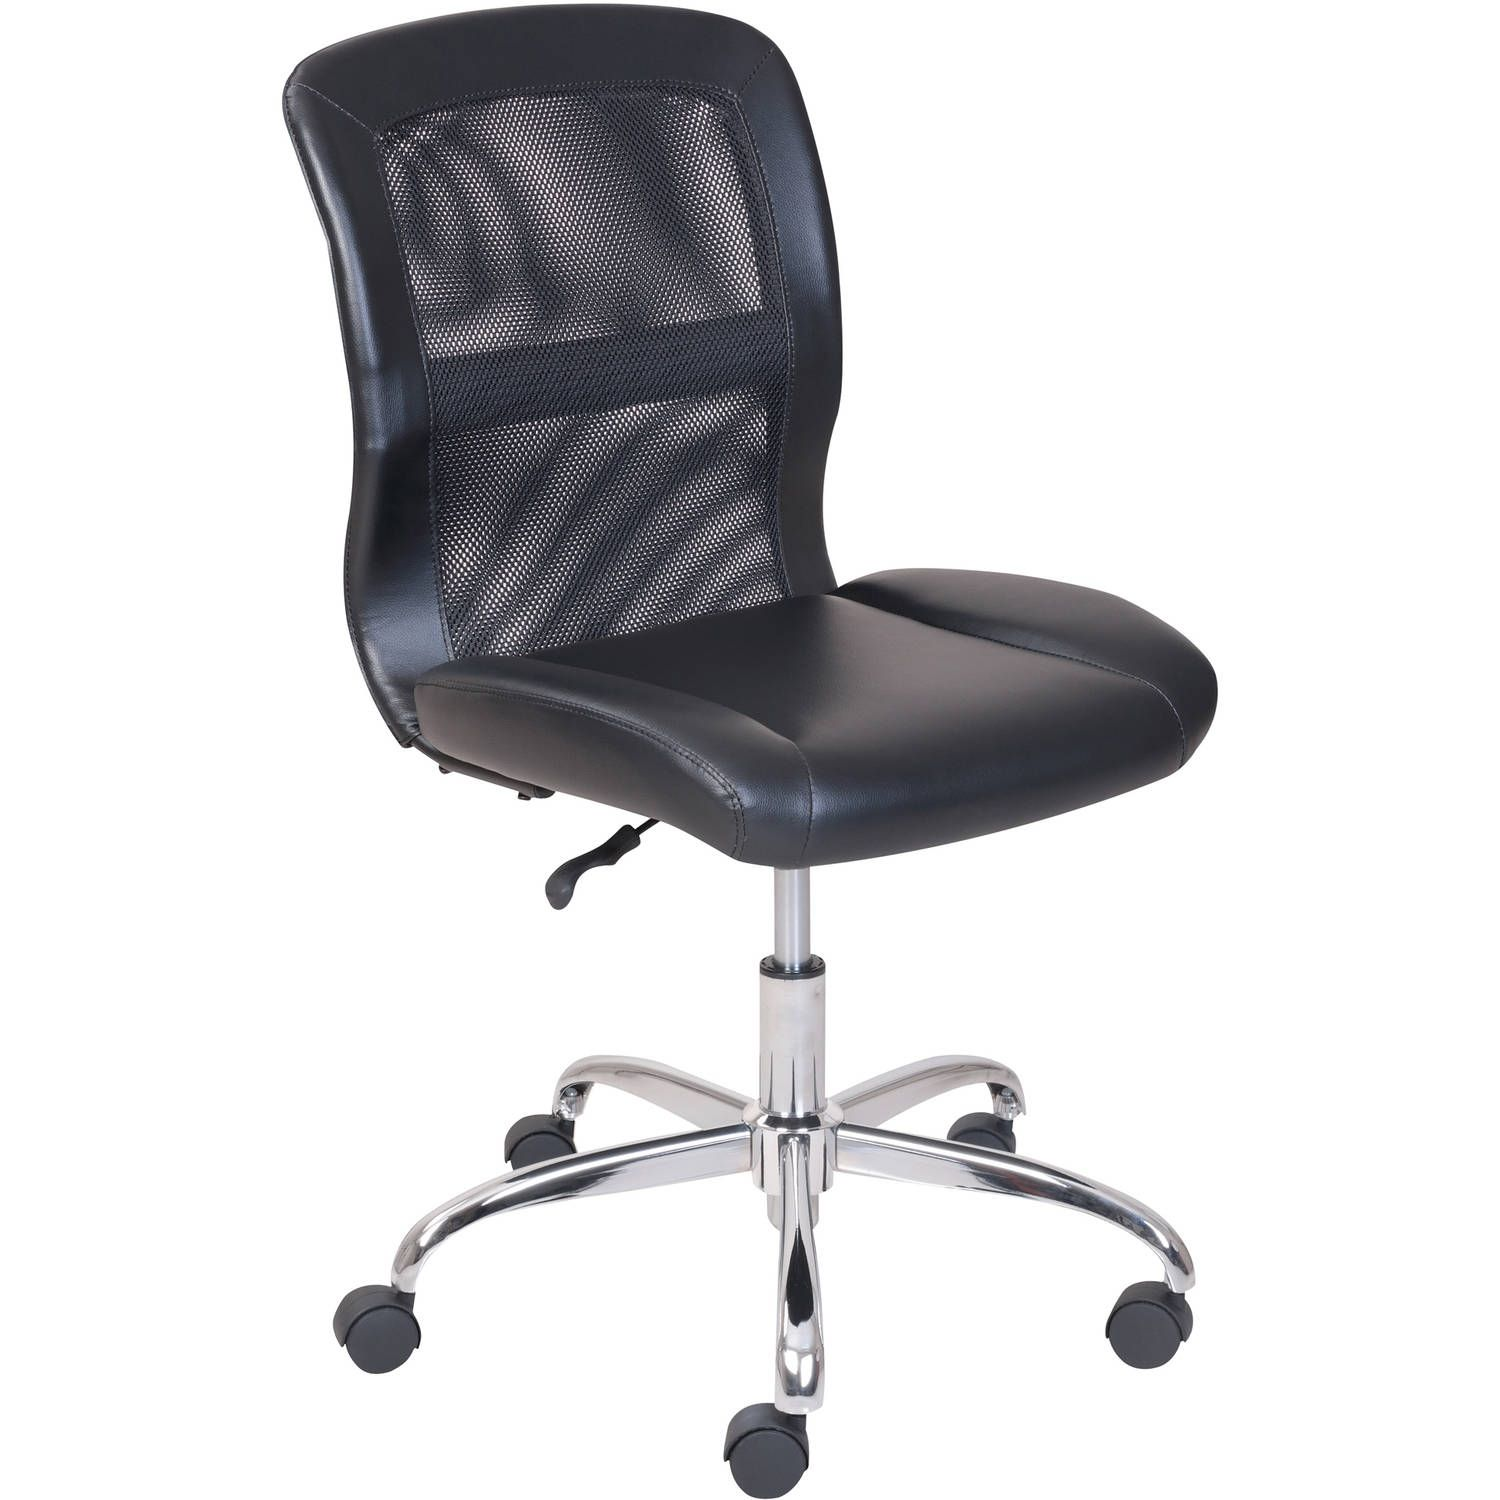 Mainstays Contemporary Office Chair Durable And Comfortable Arctic White